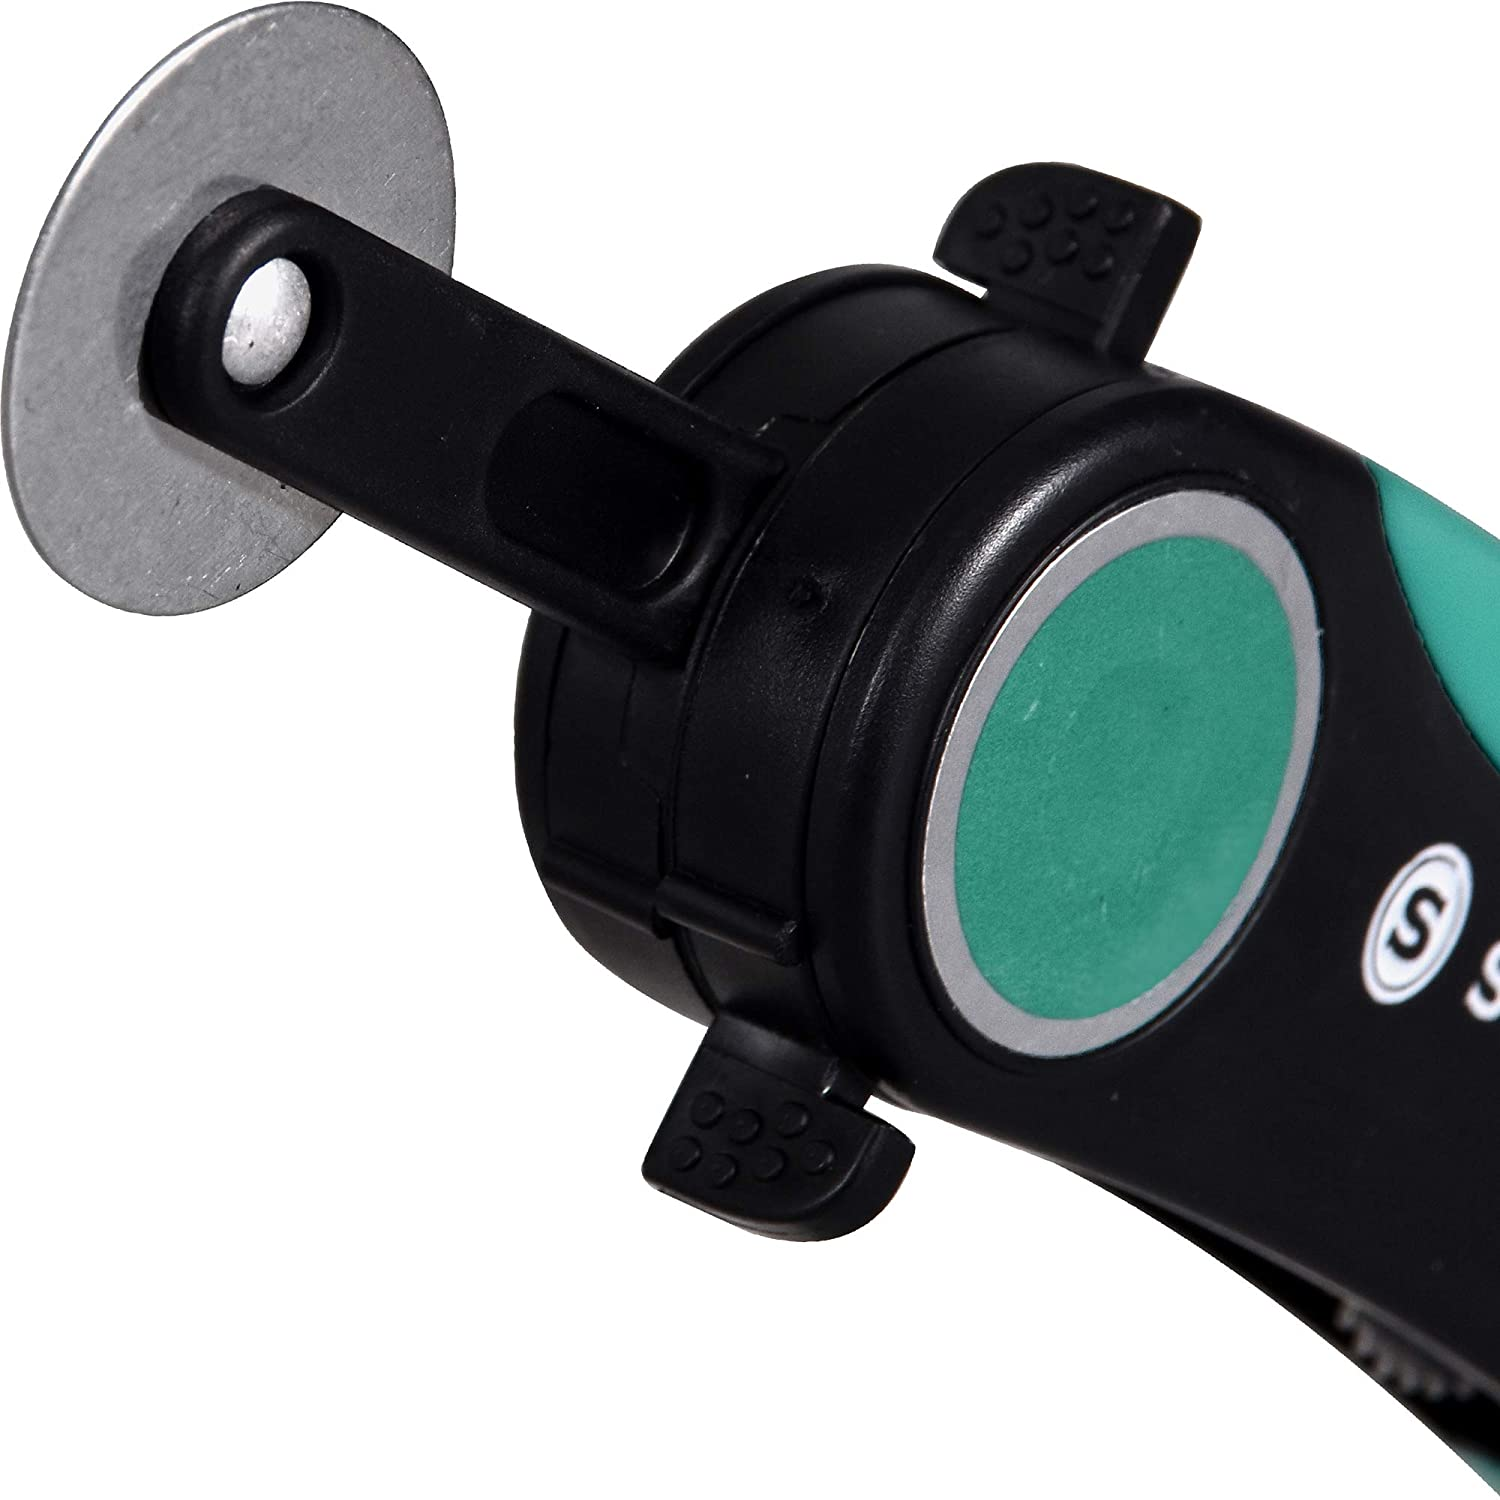 SINGER ProSeries Folding Tracing Wheel with Comfort Grip